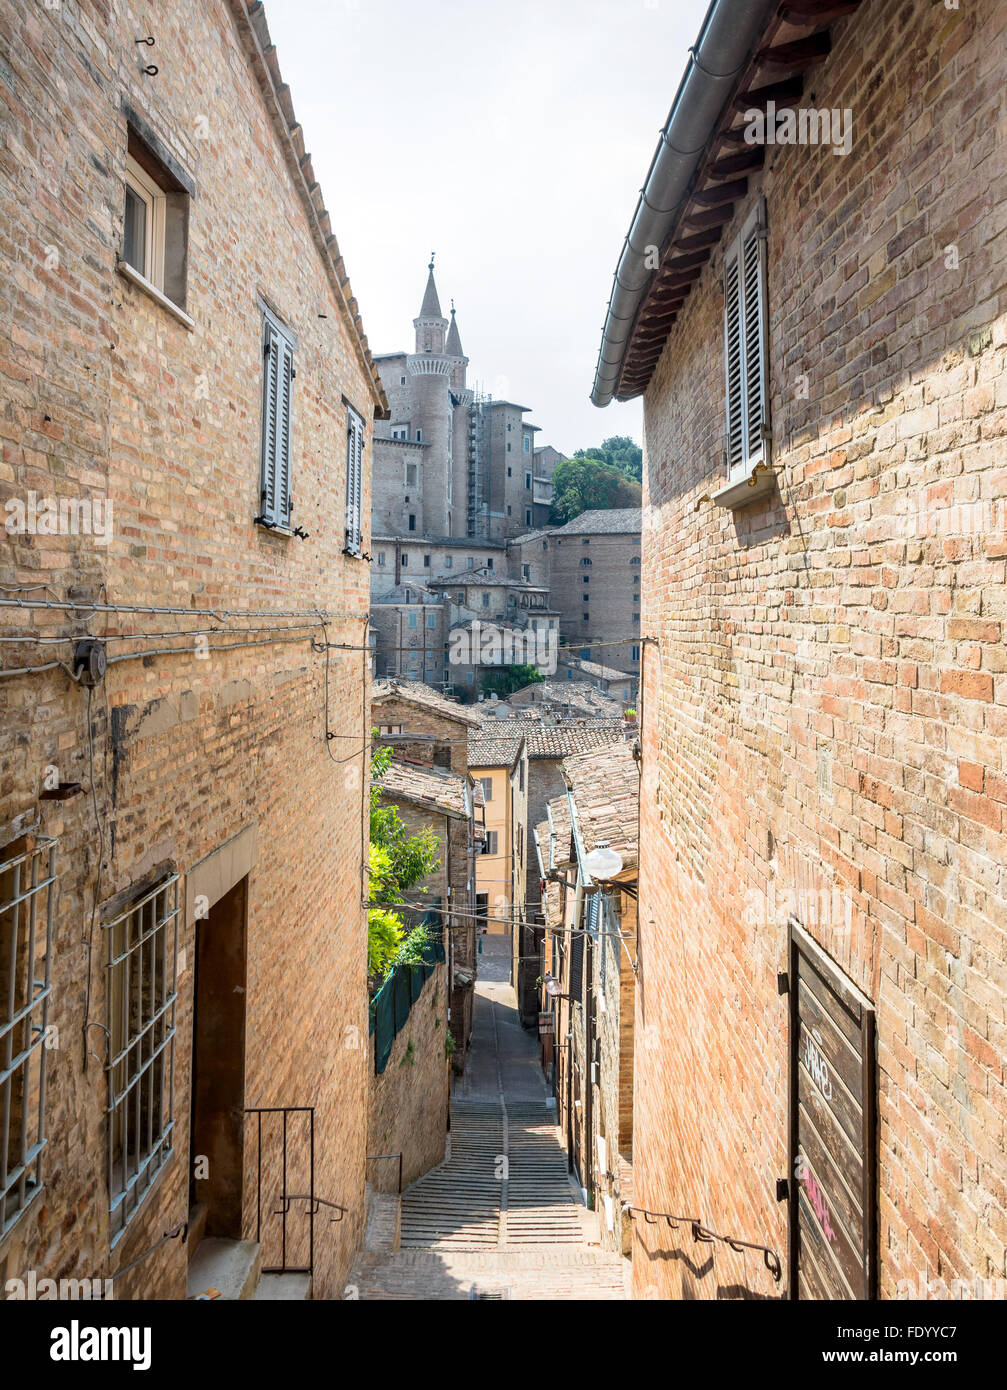 street view with skyline in Urbino, Italy. - Stock Image